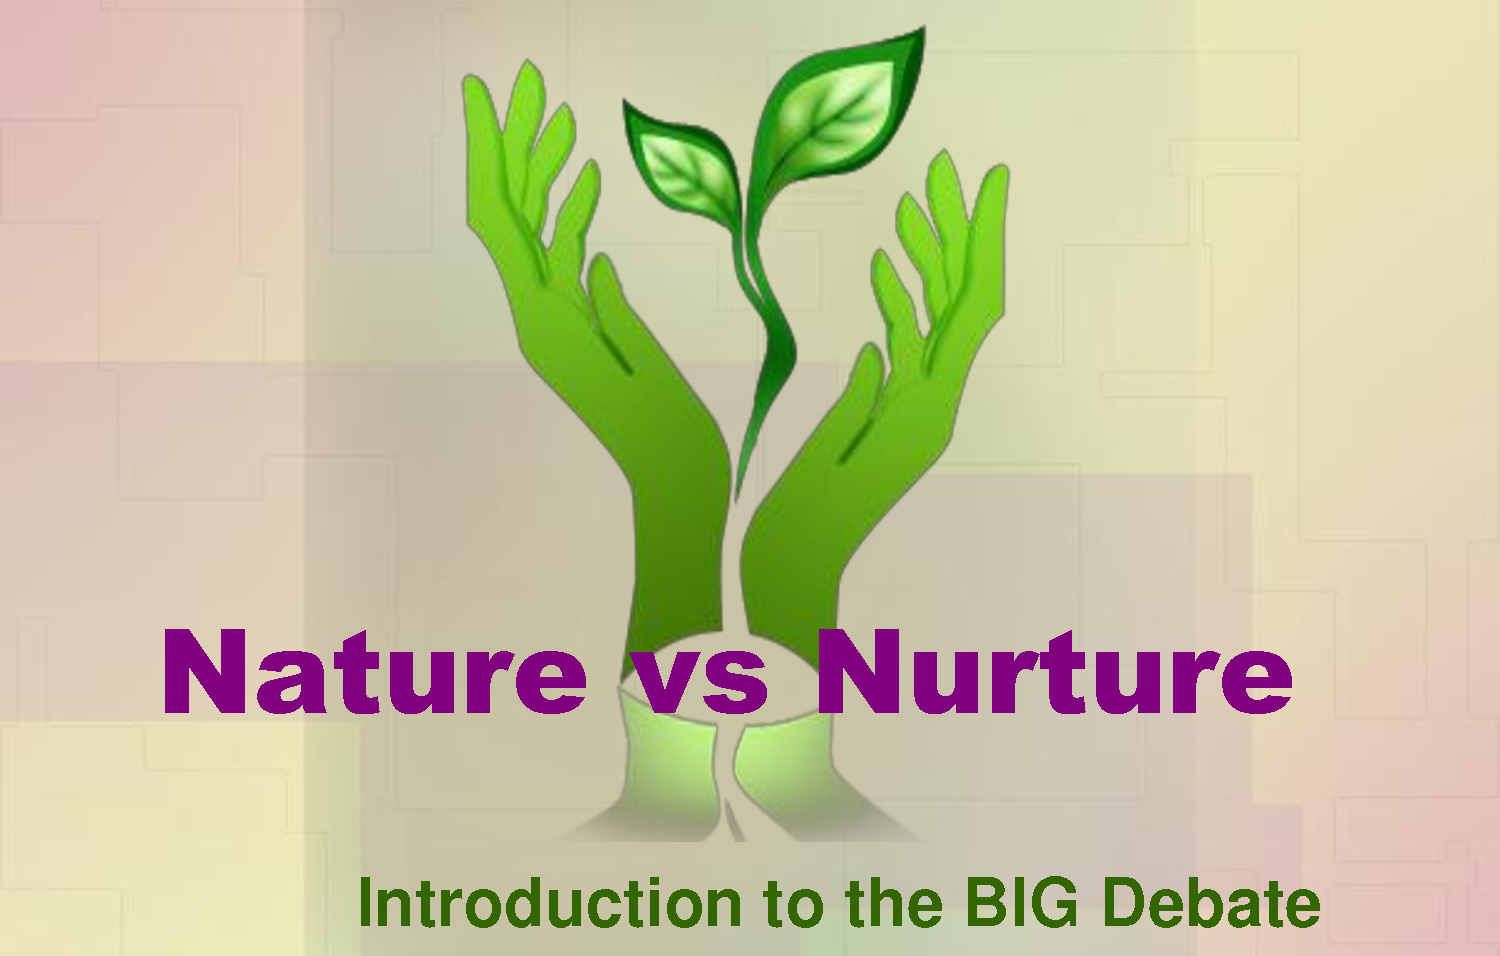 nature vs nurture 10 essay The difference between a simple nature vs nurture essay and nature vs nurture debate essay is that in another case, a student has to defend a particular point the 1st case requires describing a chosen topic in details without forcing the target reader to take any of the existing positions.